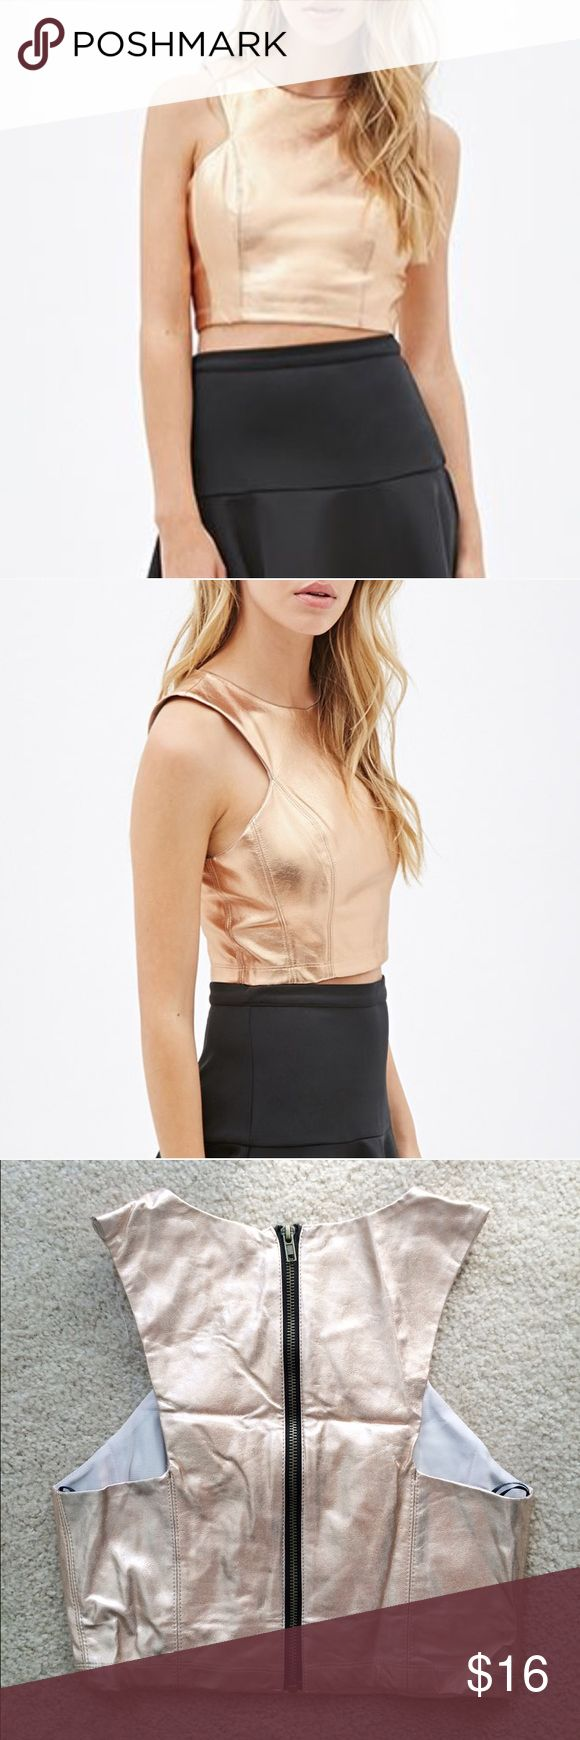 Metallic Crop Top in Rose Gold An eye-catching crop top in a brilliant rose gold metallic coated fabric. High cut racer front style is very trendy this year! Zip up the back. Never worn. Stock photos from Forever 21. Forever 21 Tops Crop Tops